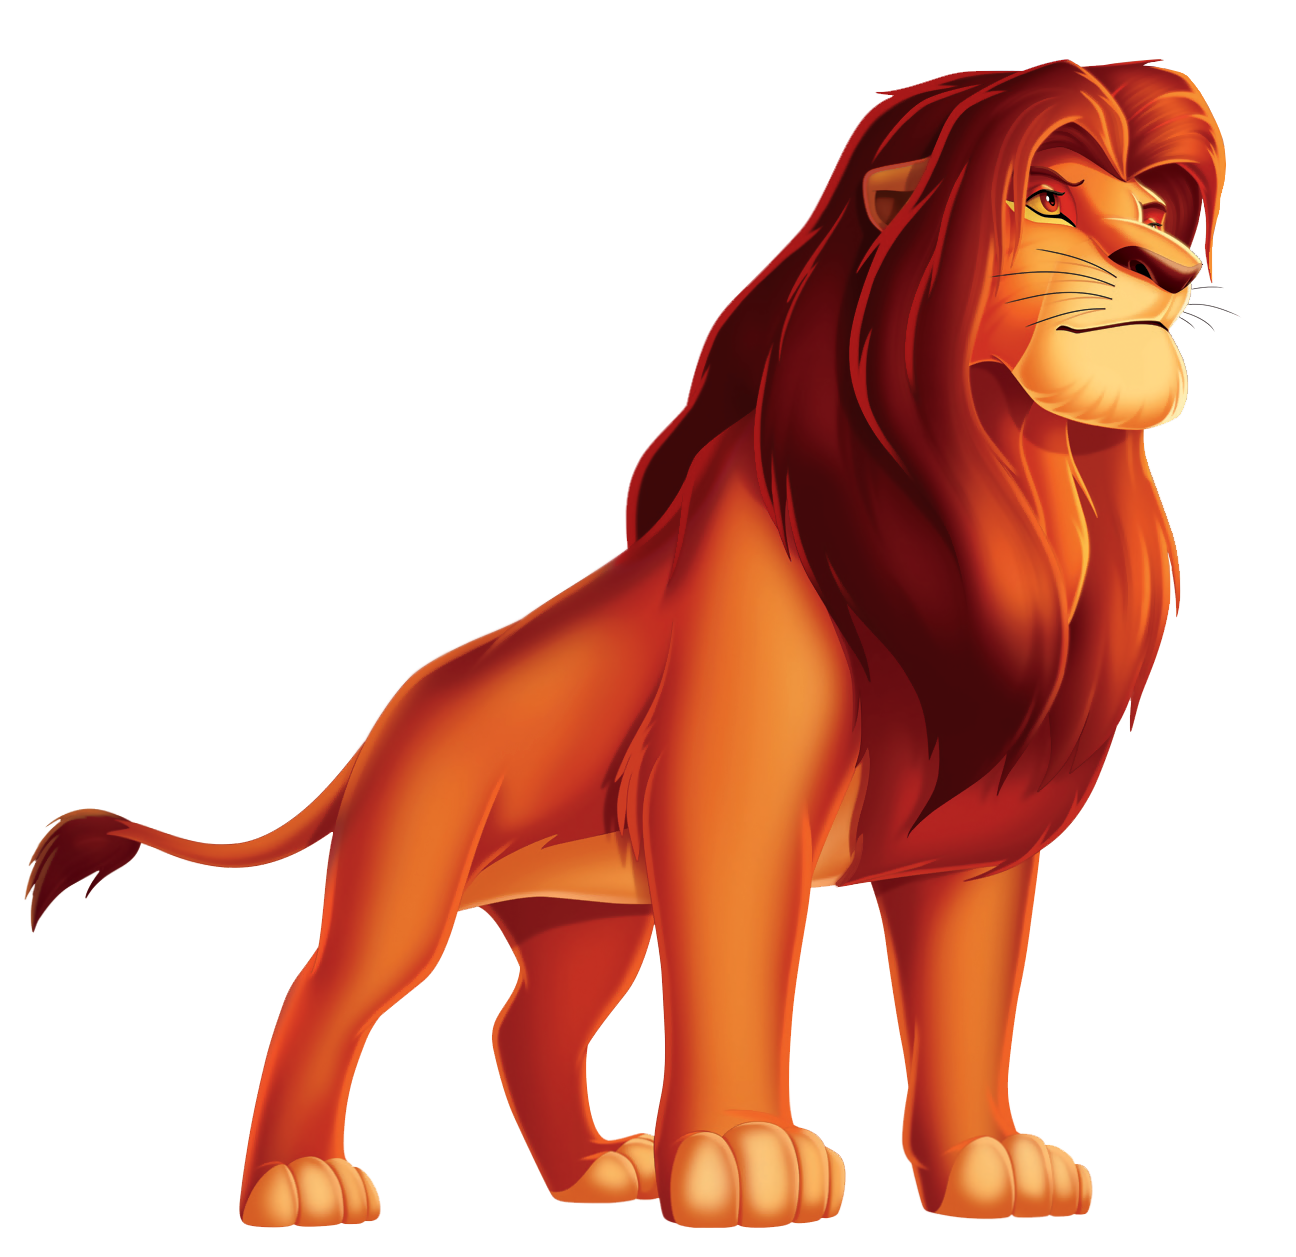 King_Lion_Cartoon_PNG_Picture.png